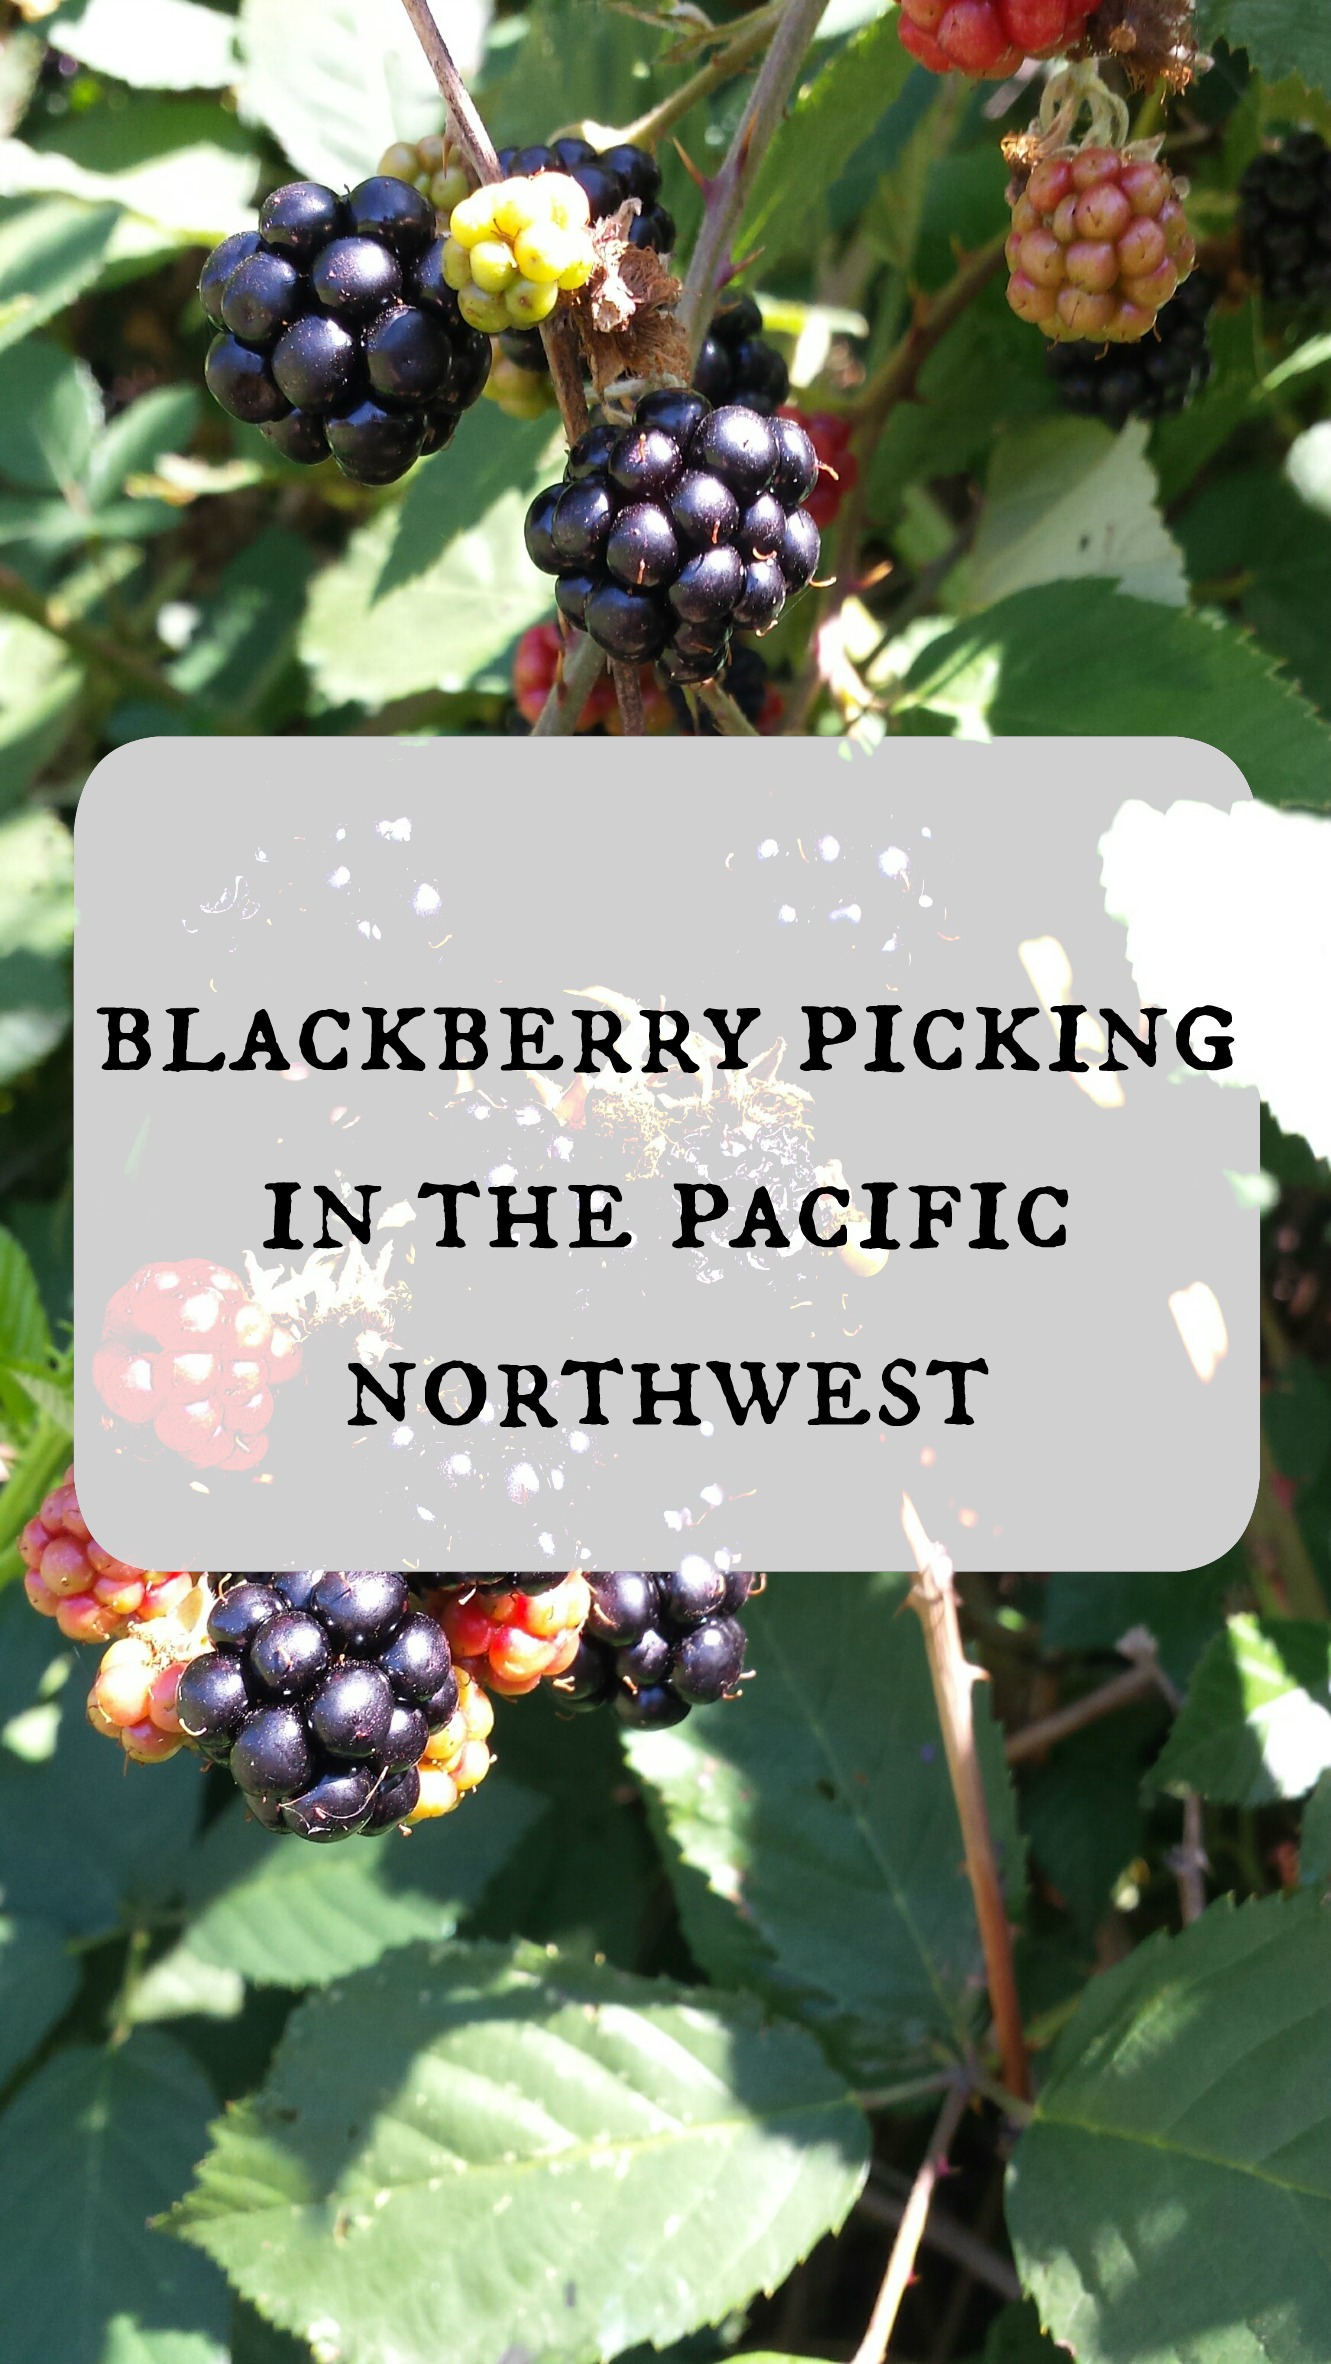 BLACKERRy picking in the pnw